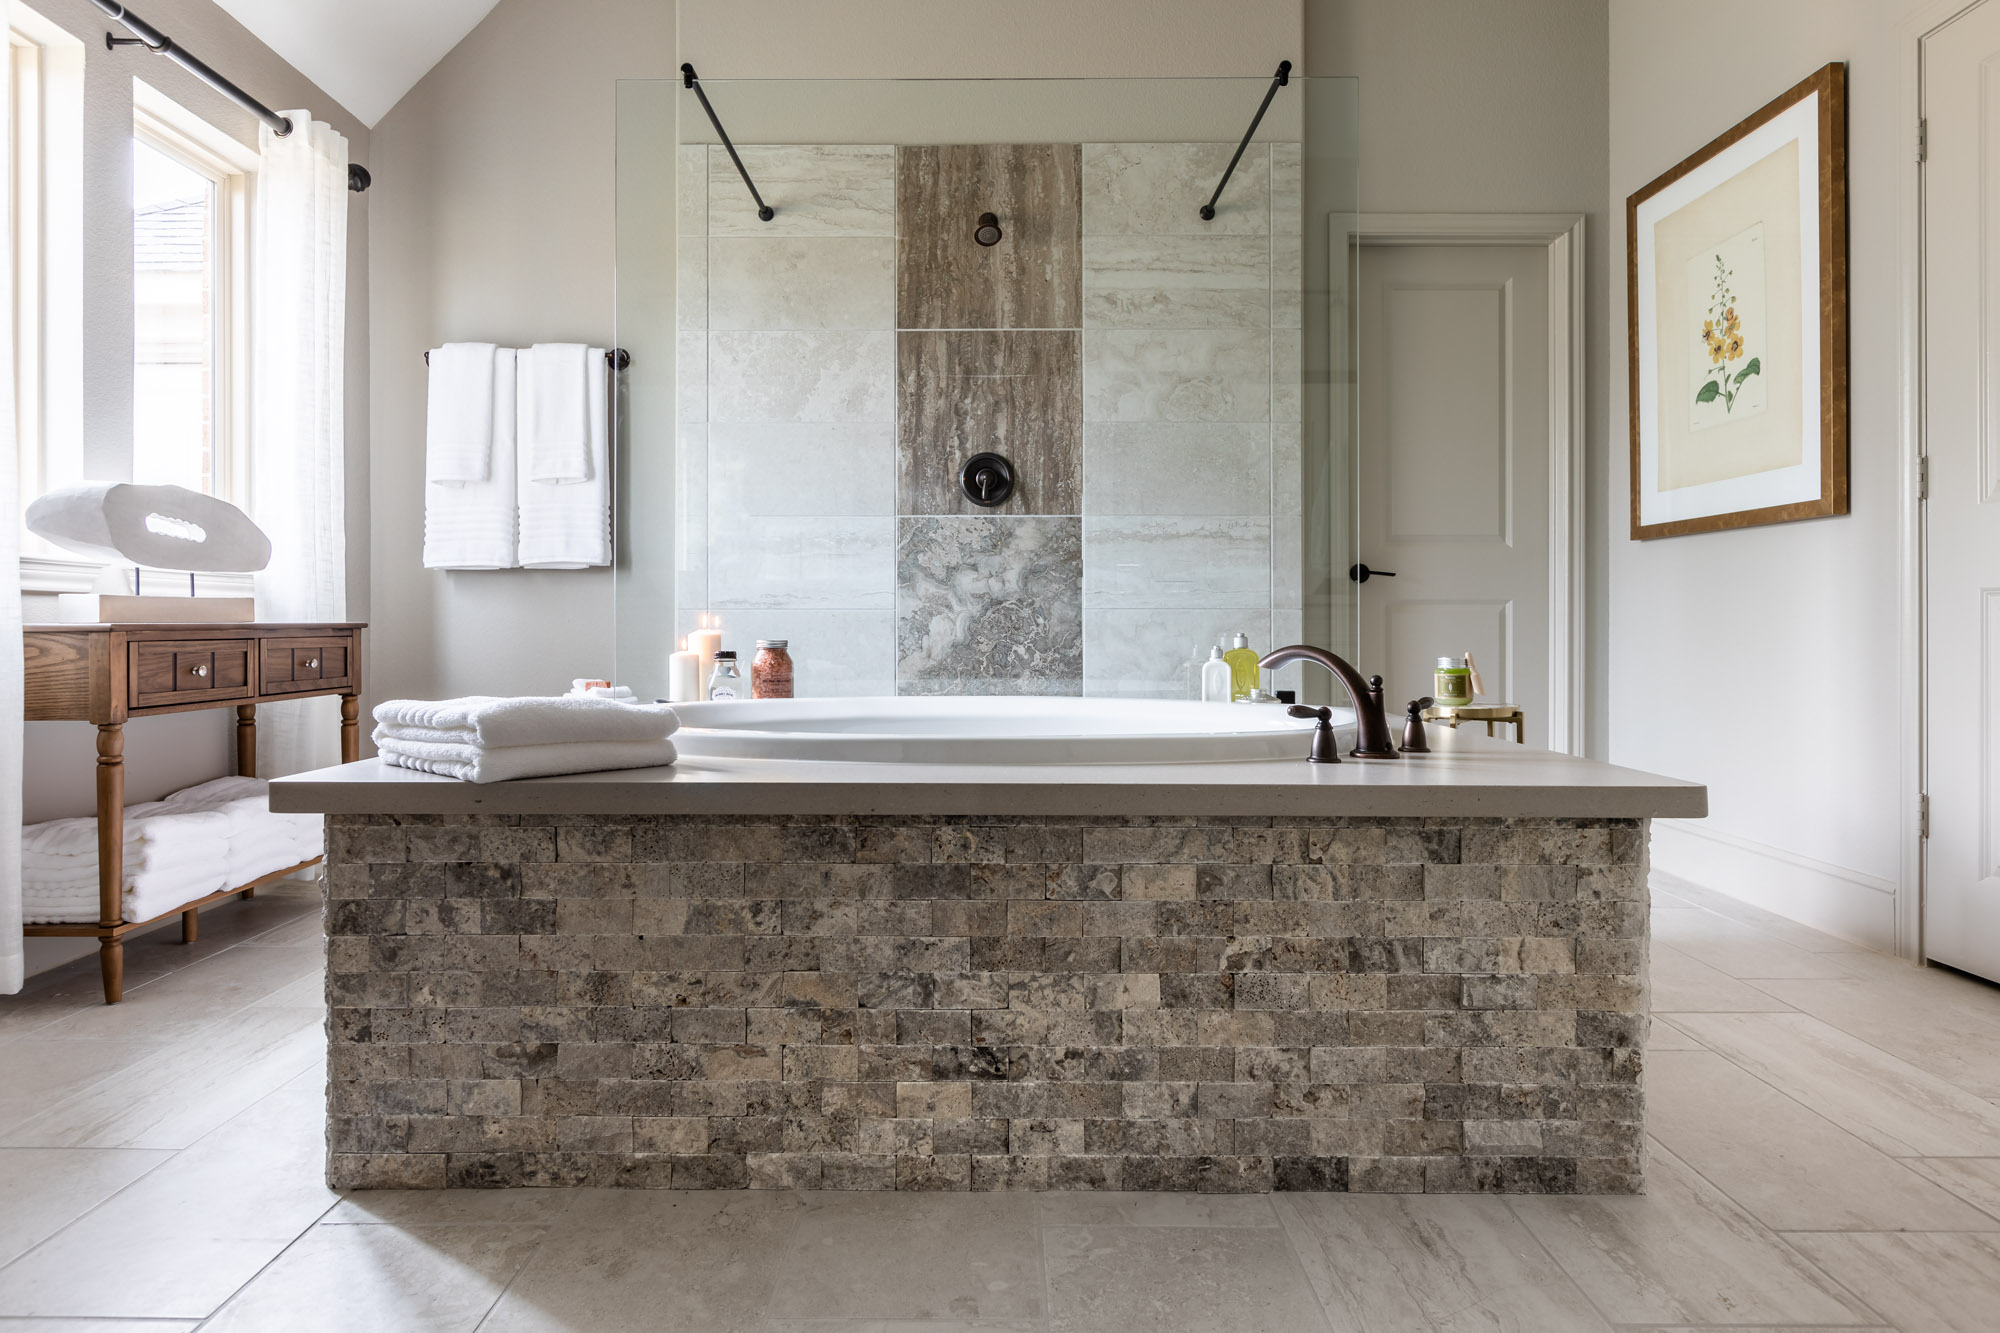 Harper's Preserve master bath with stone-covered bathtub in centre and shower with clear glass wall